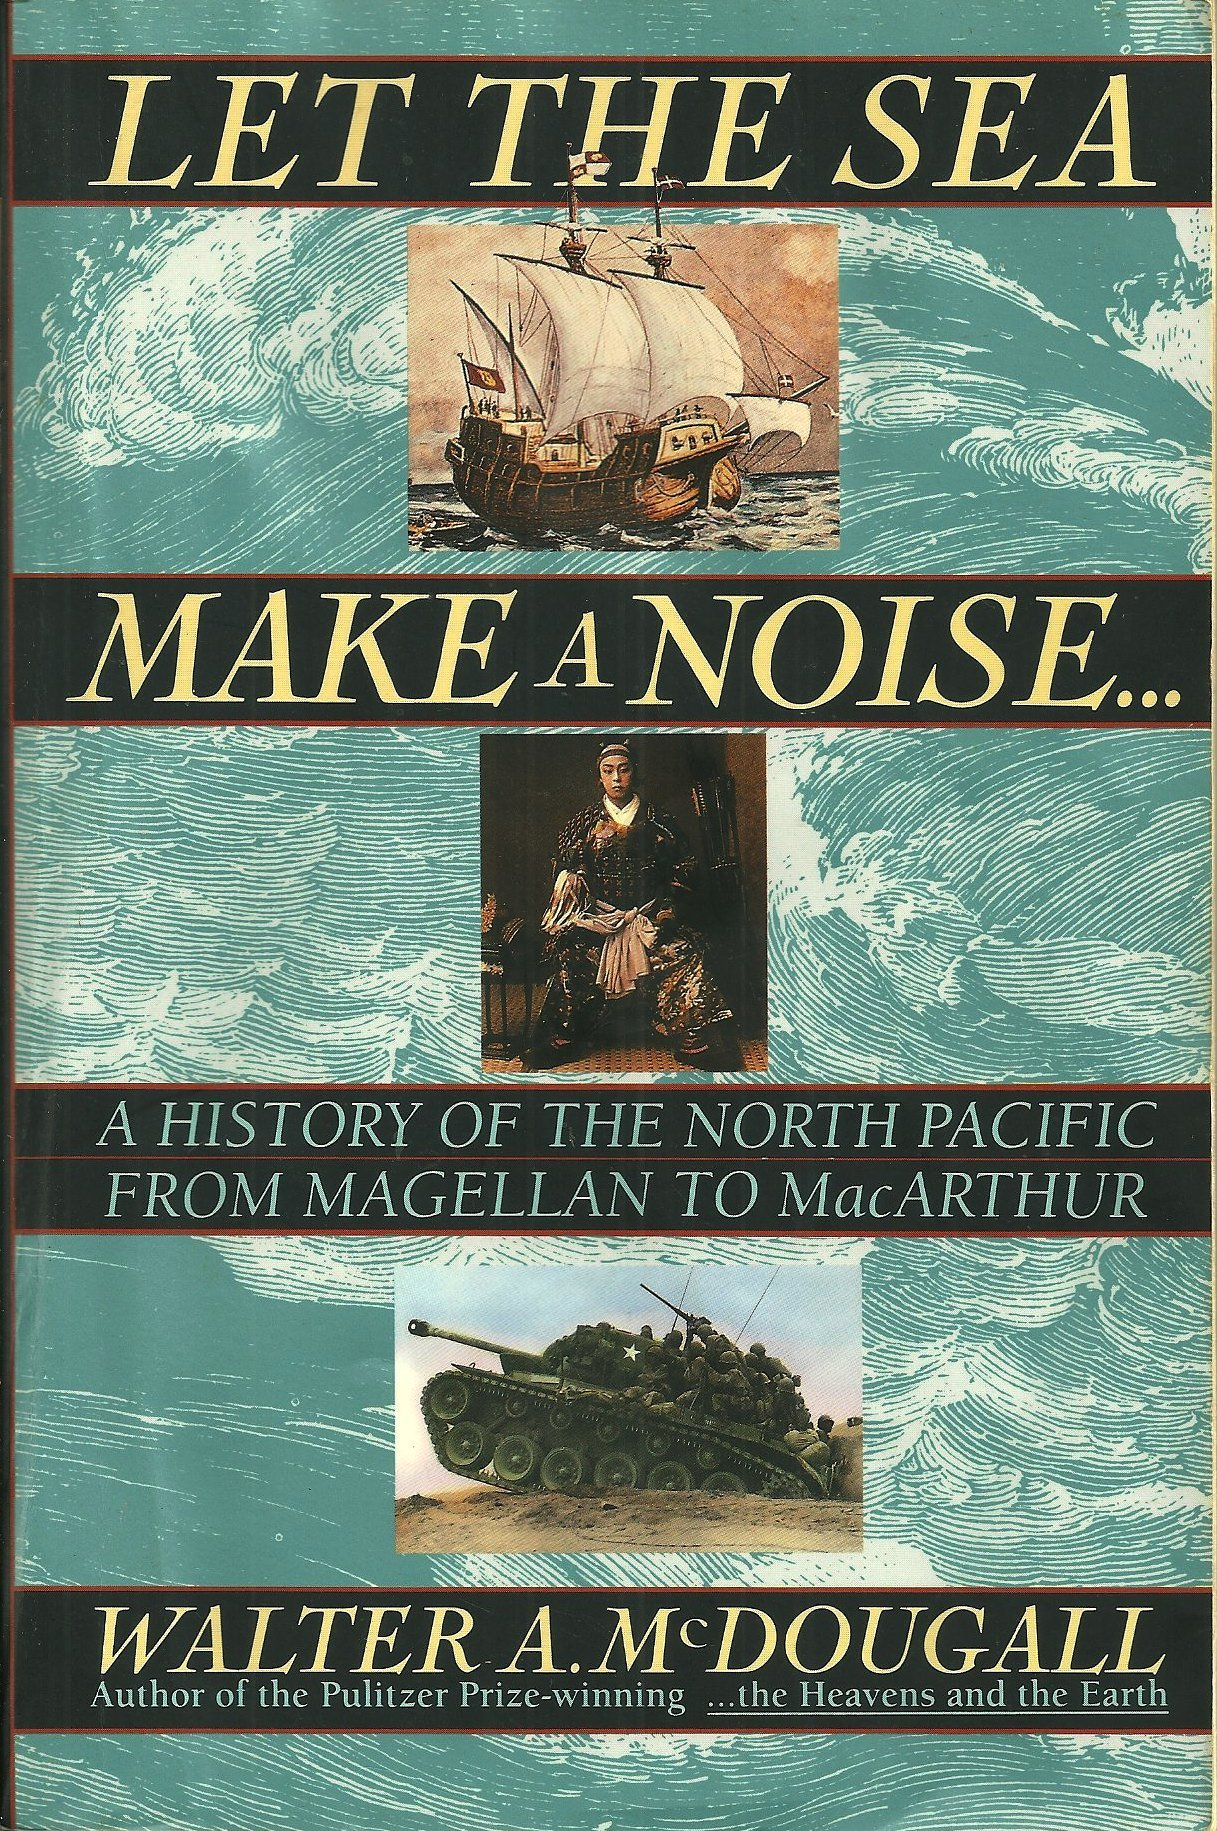 Let The Sea Make A Noise: A History Of The North Pacific From Magellan To Macarthur, Mcdougall, Walter A.